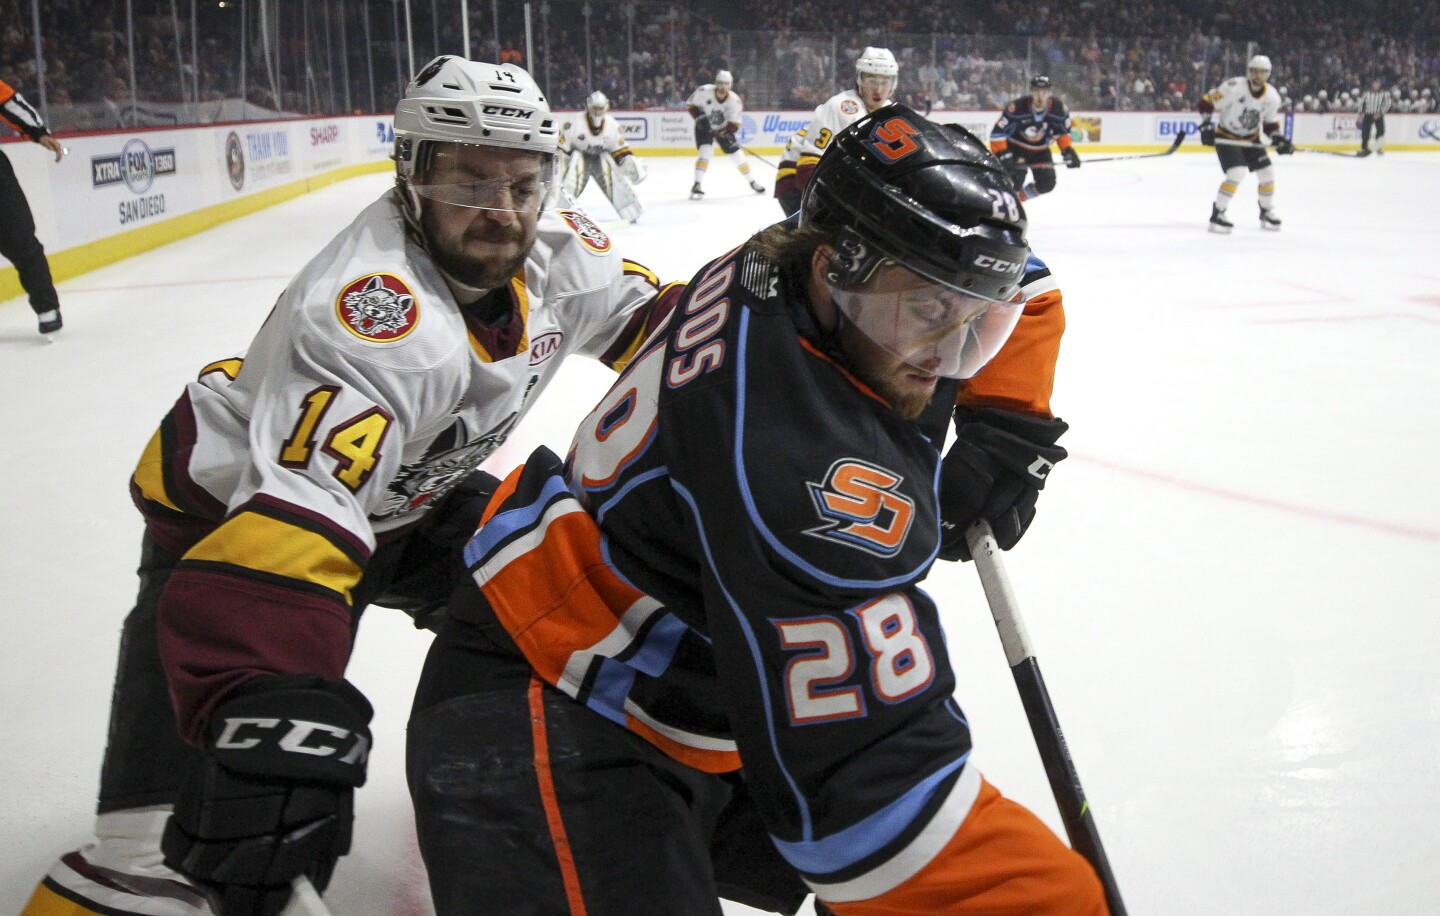 The Gulls' Justin Kloos, right, and Chicago's Matthew Weis battle for the puck in the first period during game 5 of the AHL Western Conference finals at the Pechanga Arena on Saturday, May 25, 2019 in San Diego, California.